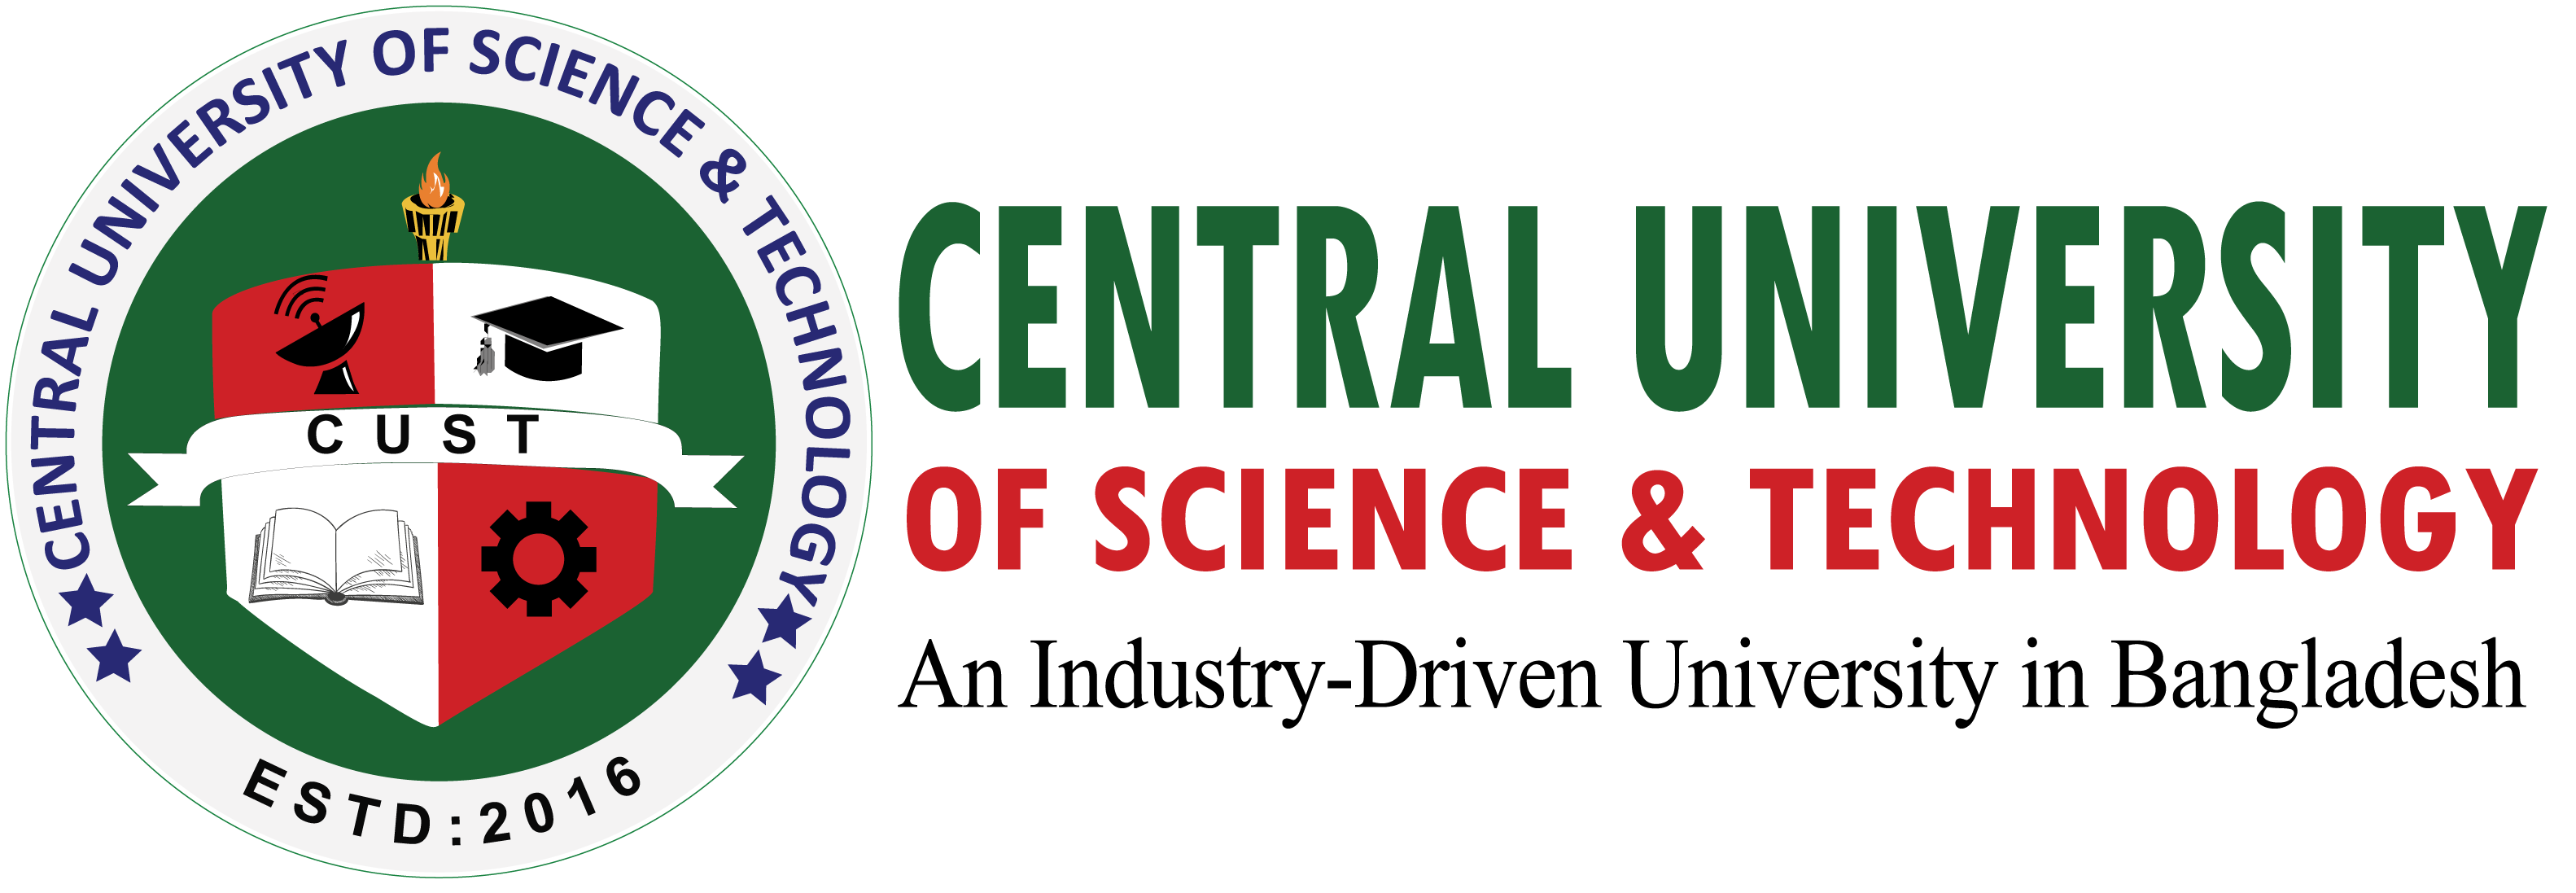 Contact SBID - Central University of Science & Technology